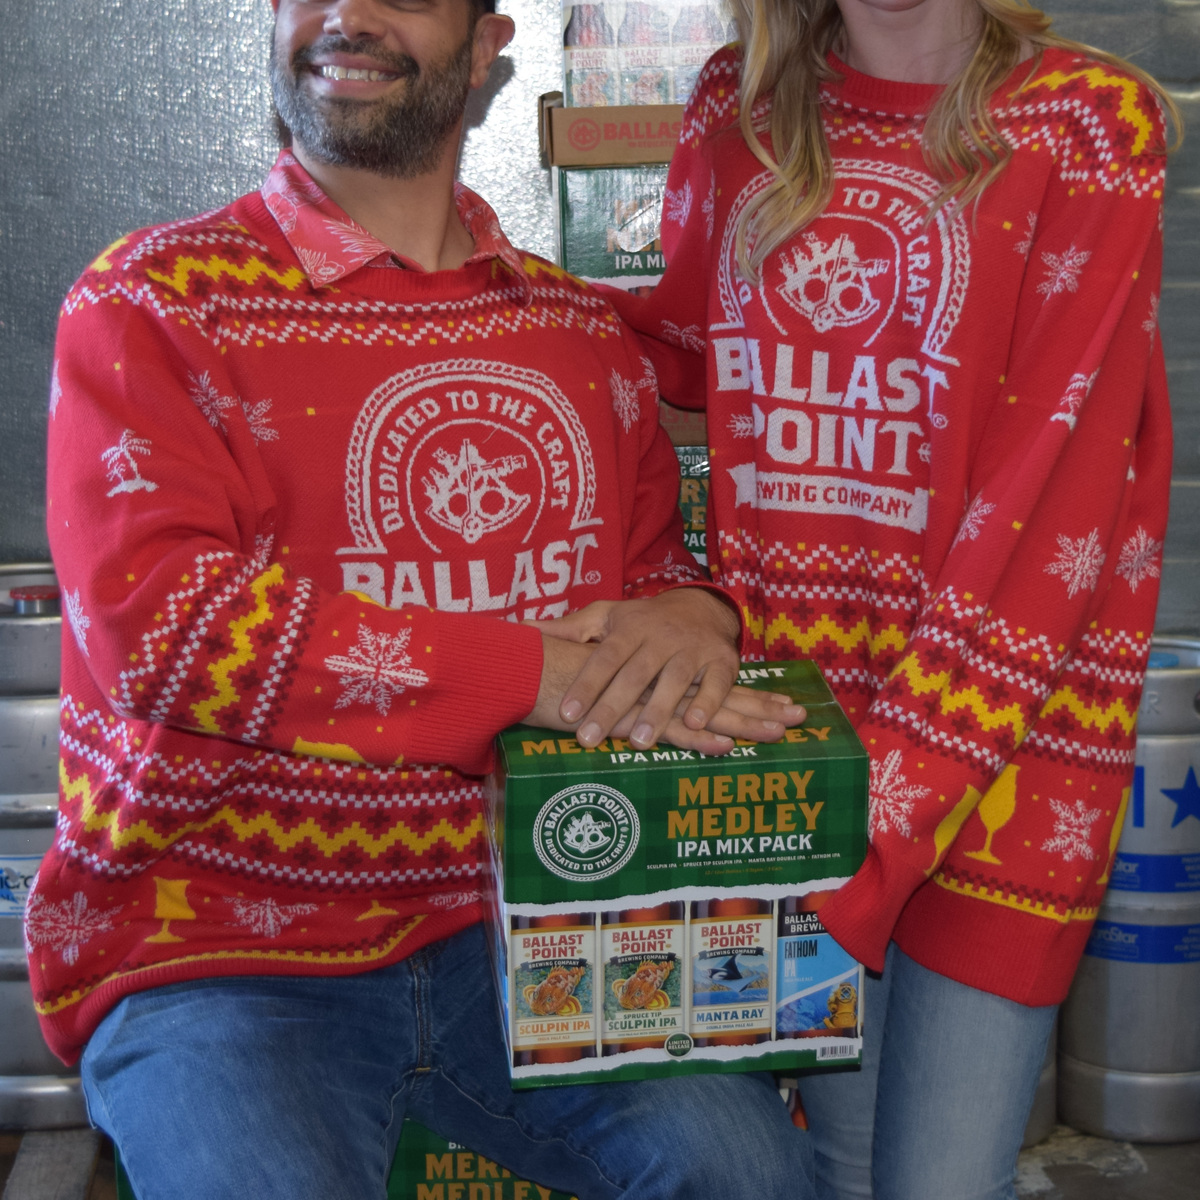 Ballast Point Ugly Sweater